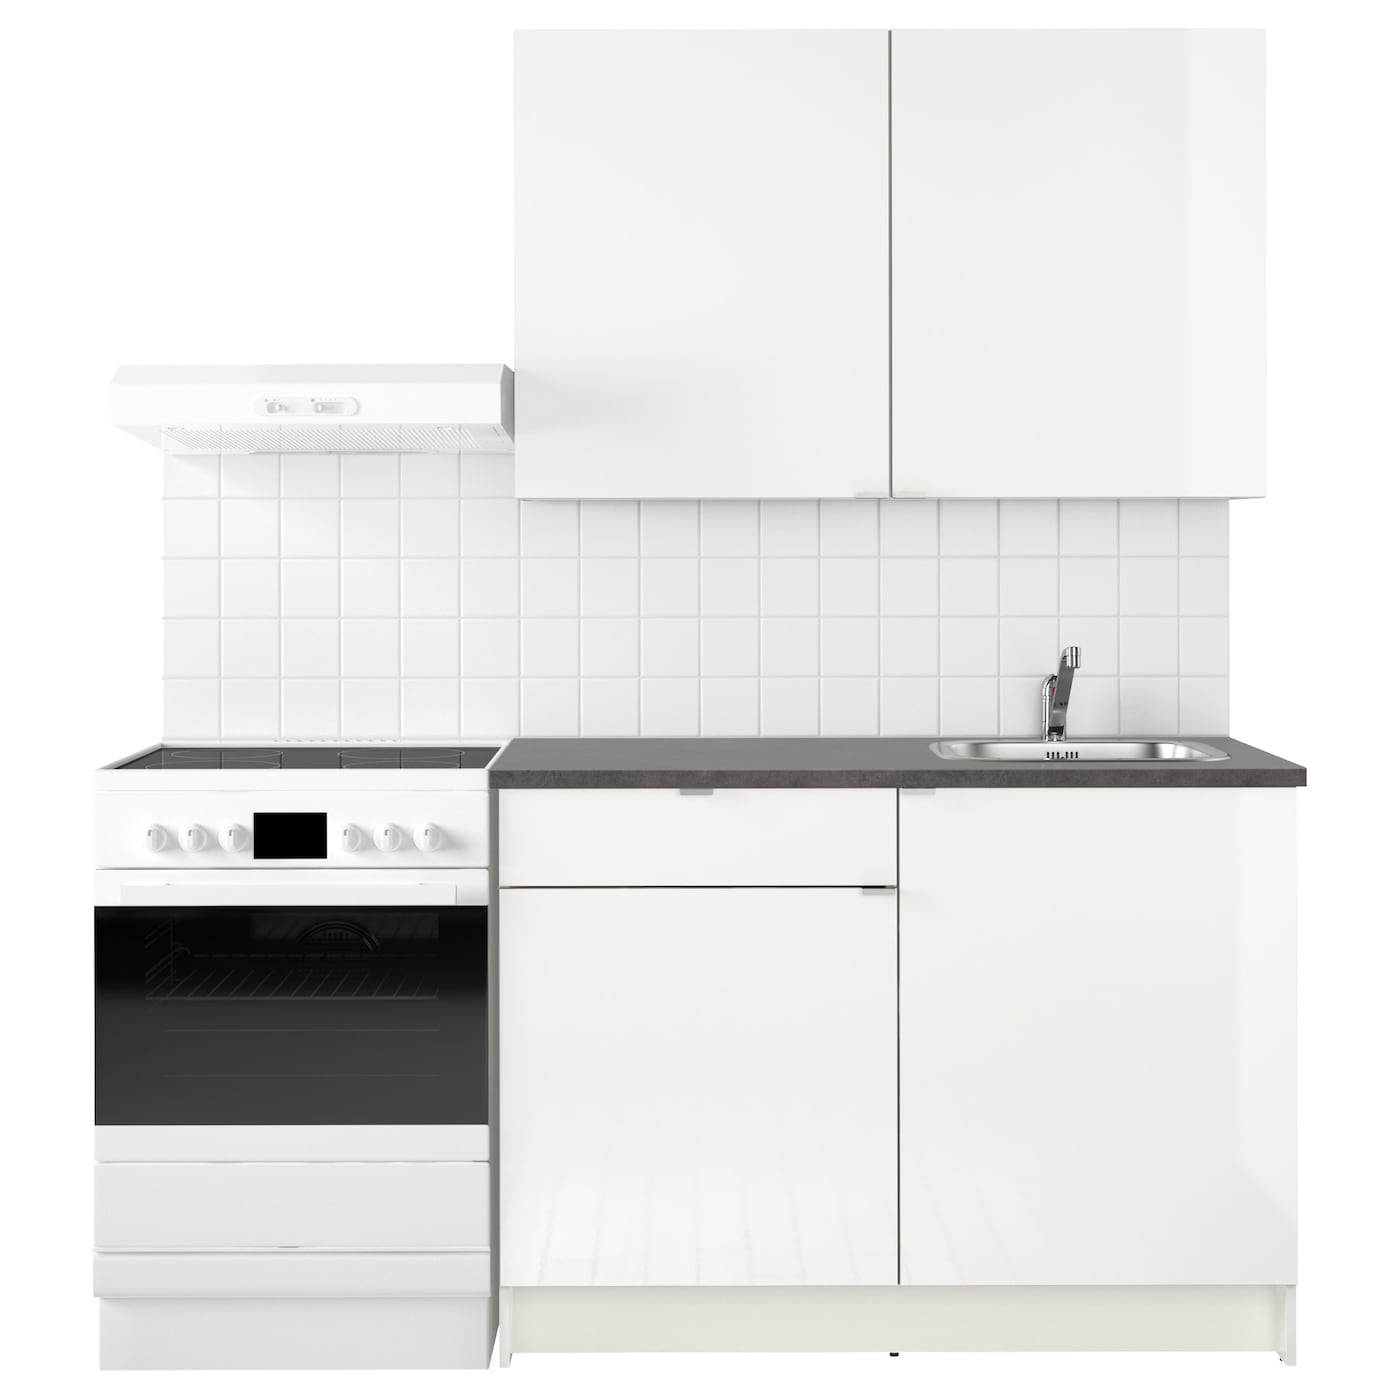 knoxhult kitchen high gloss white 120x61x220 cm ikea. Black Bedroom Furniture Sets. Home Design Ideas